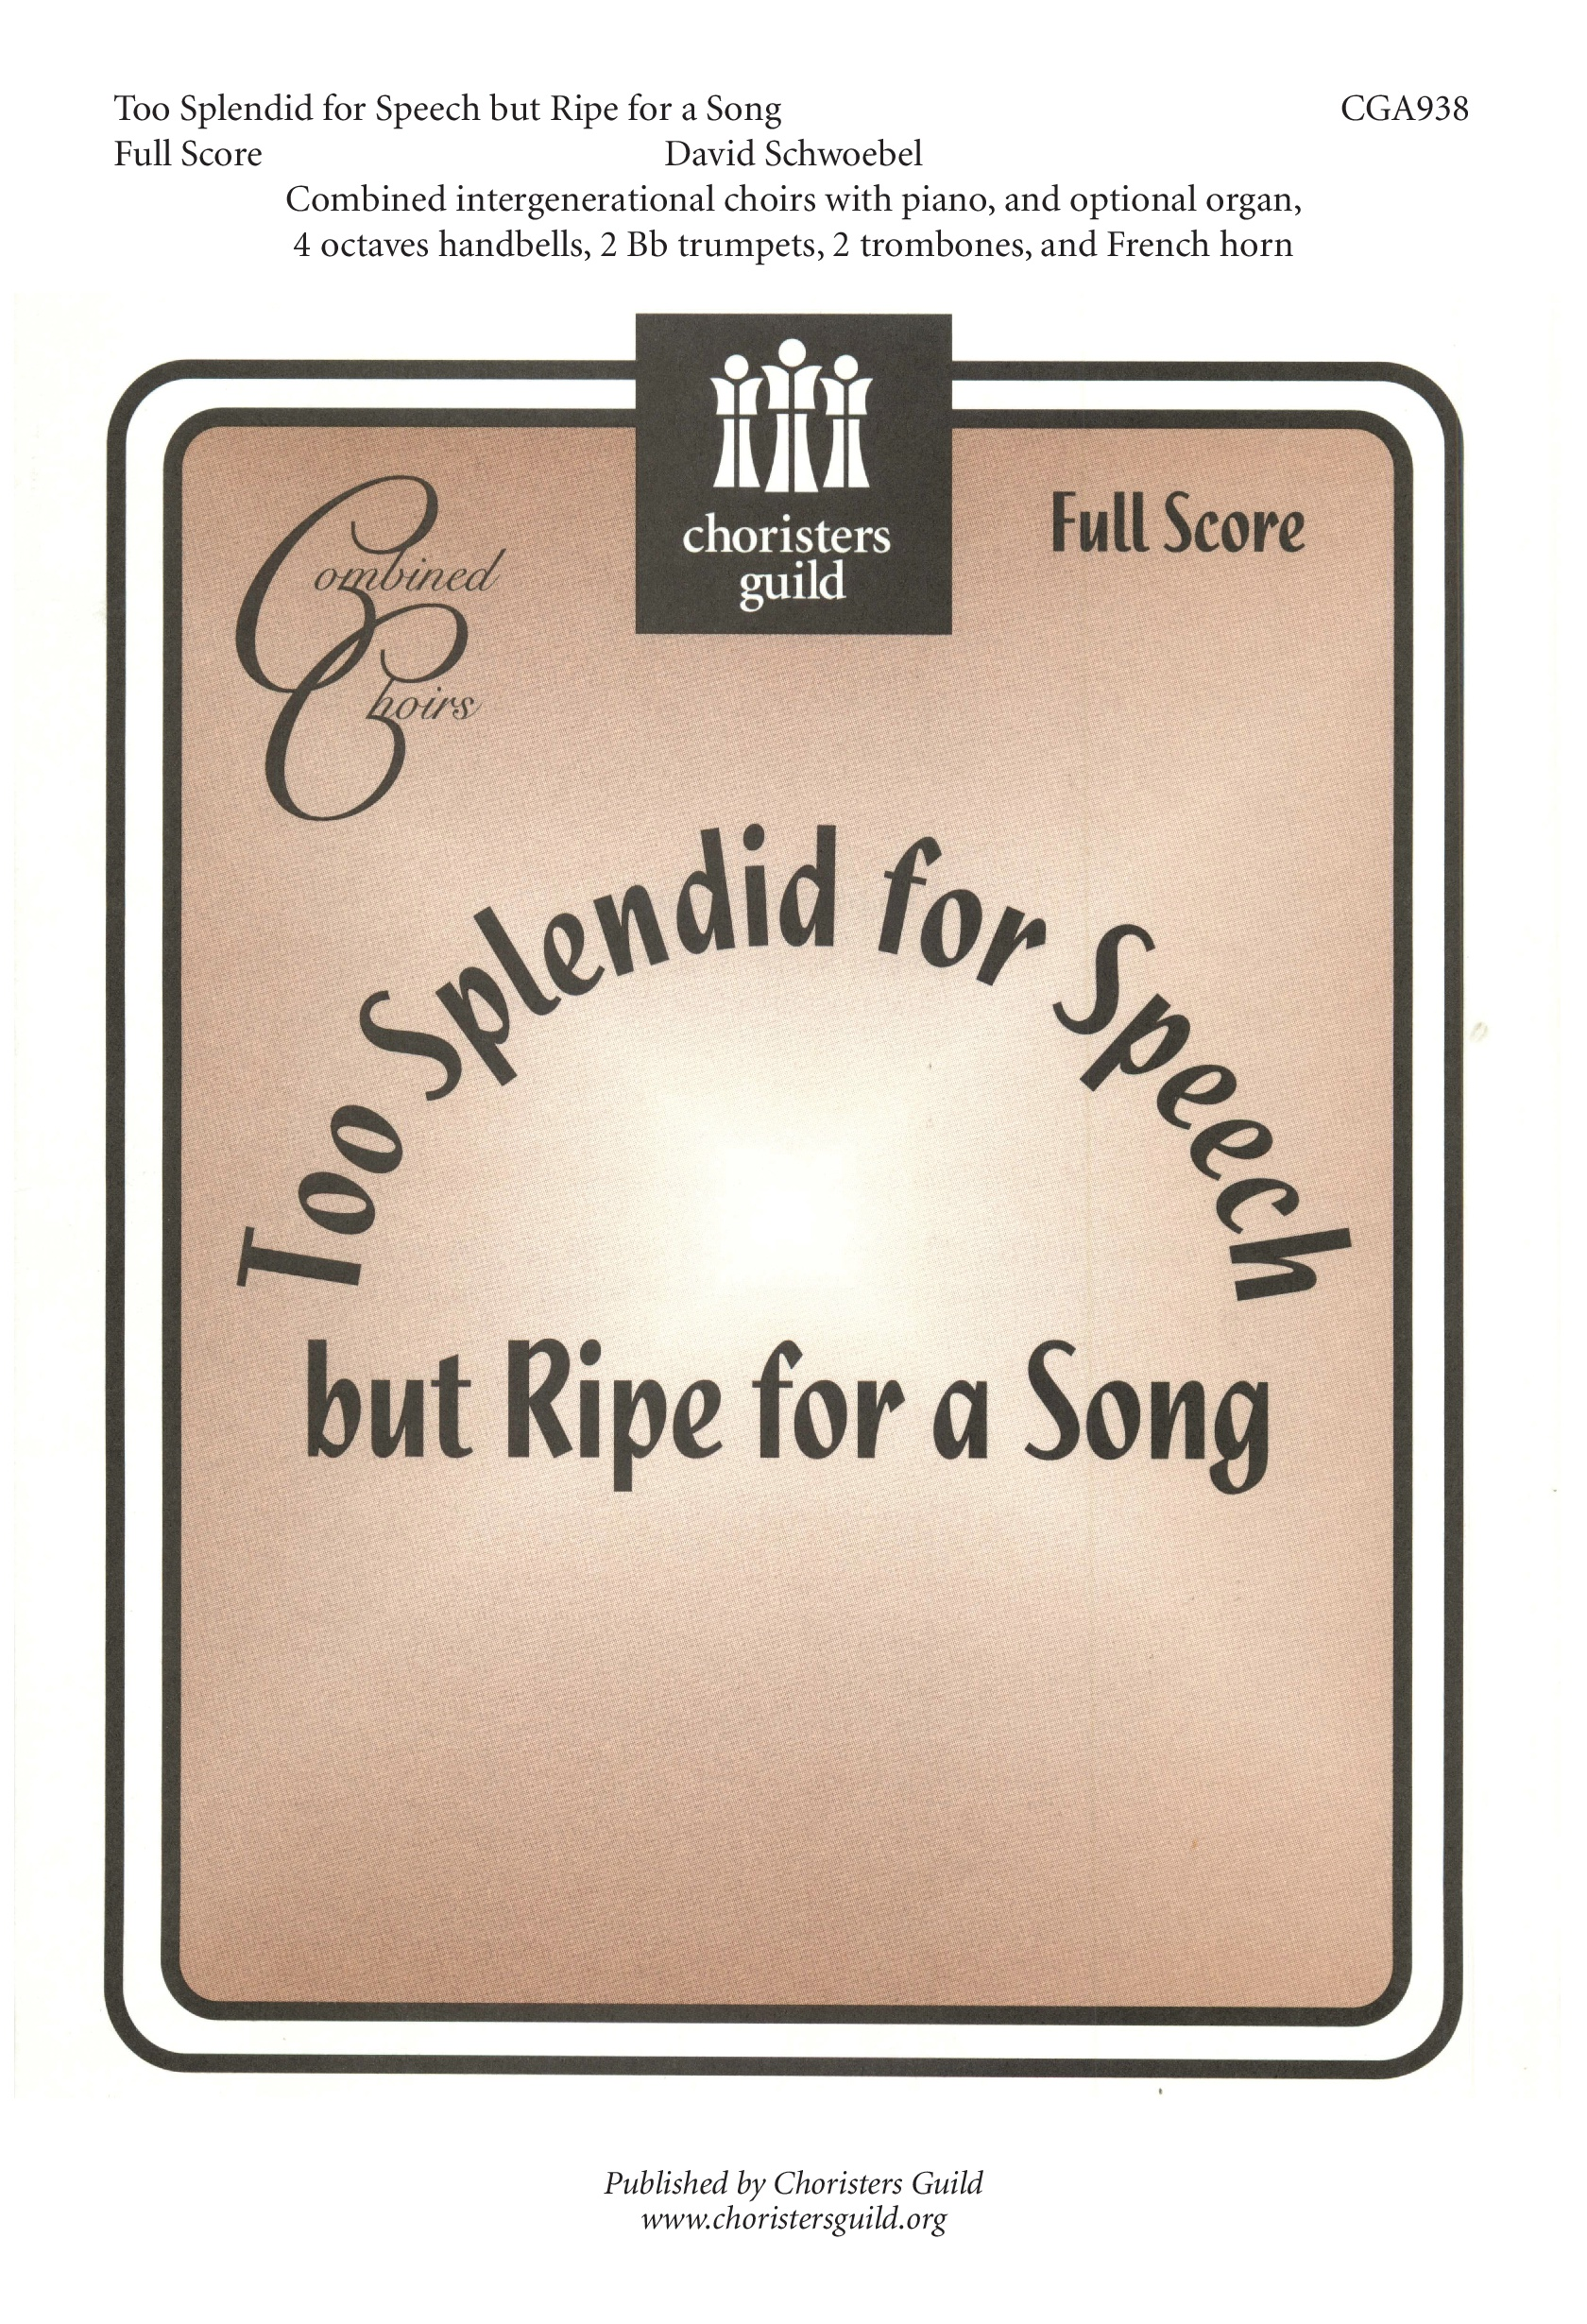 Too Splendid for Speech but Ripe for a Song Full Score